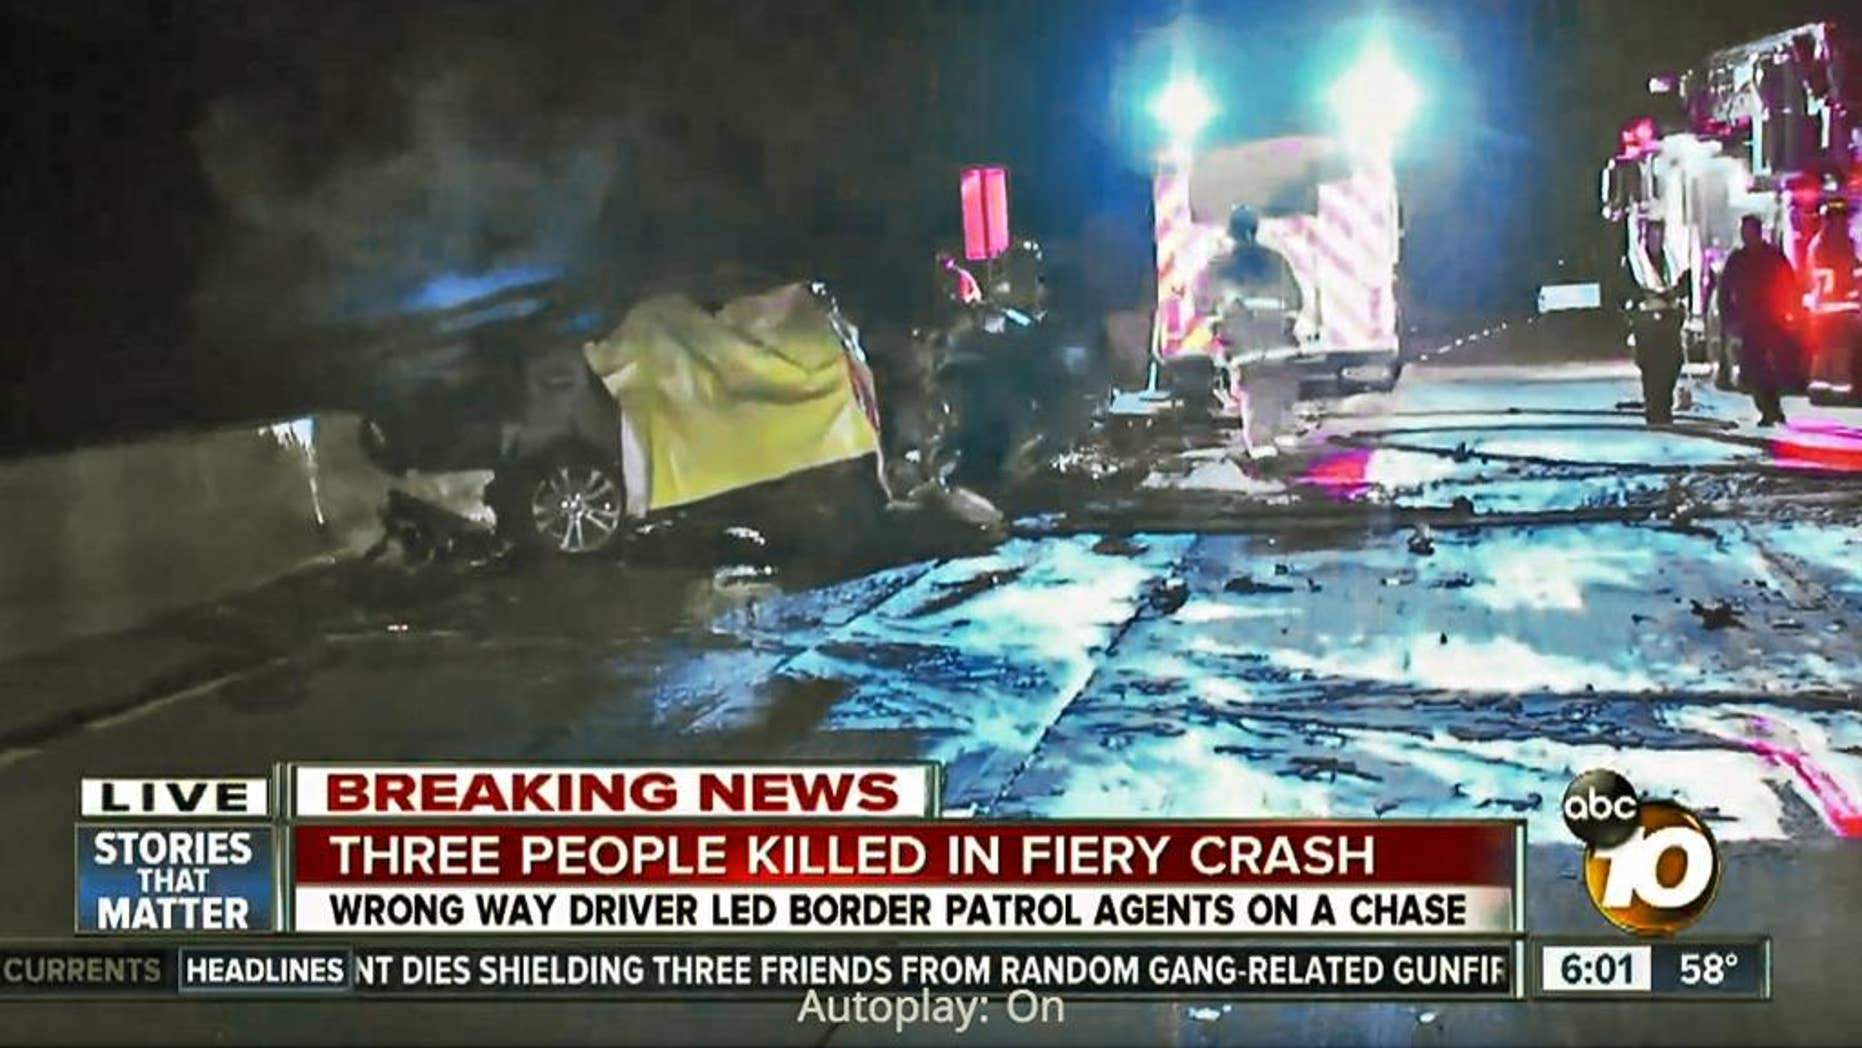 In this frame from video provided by KGTV-10News.com, a yellow tarp covers a body at the scene of a head-on collision caused by a wrong-way driver on Interstate 5 near Solana Beach, Calif., early Sunday, Dec. 20, 2015. A Mercedes was traveling south on Interstate 5 when it made a U-turn at the San Ysidro border crossing into Mexico, south of San Diego, and began traveling north in the southbound lanes, California Highway Patrol spokesman Jim Bettencourt said. (KGTV-10News.com via AP) TV OUT, MANDATORY CREDIT